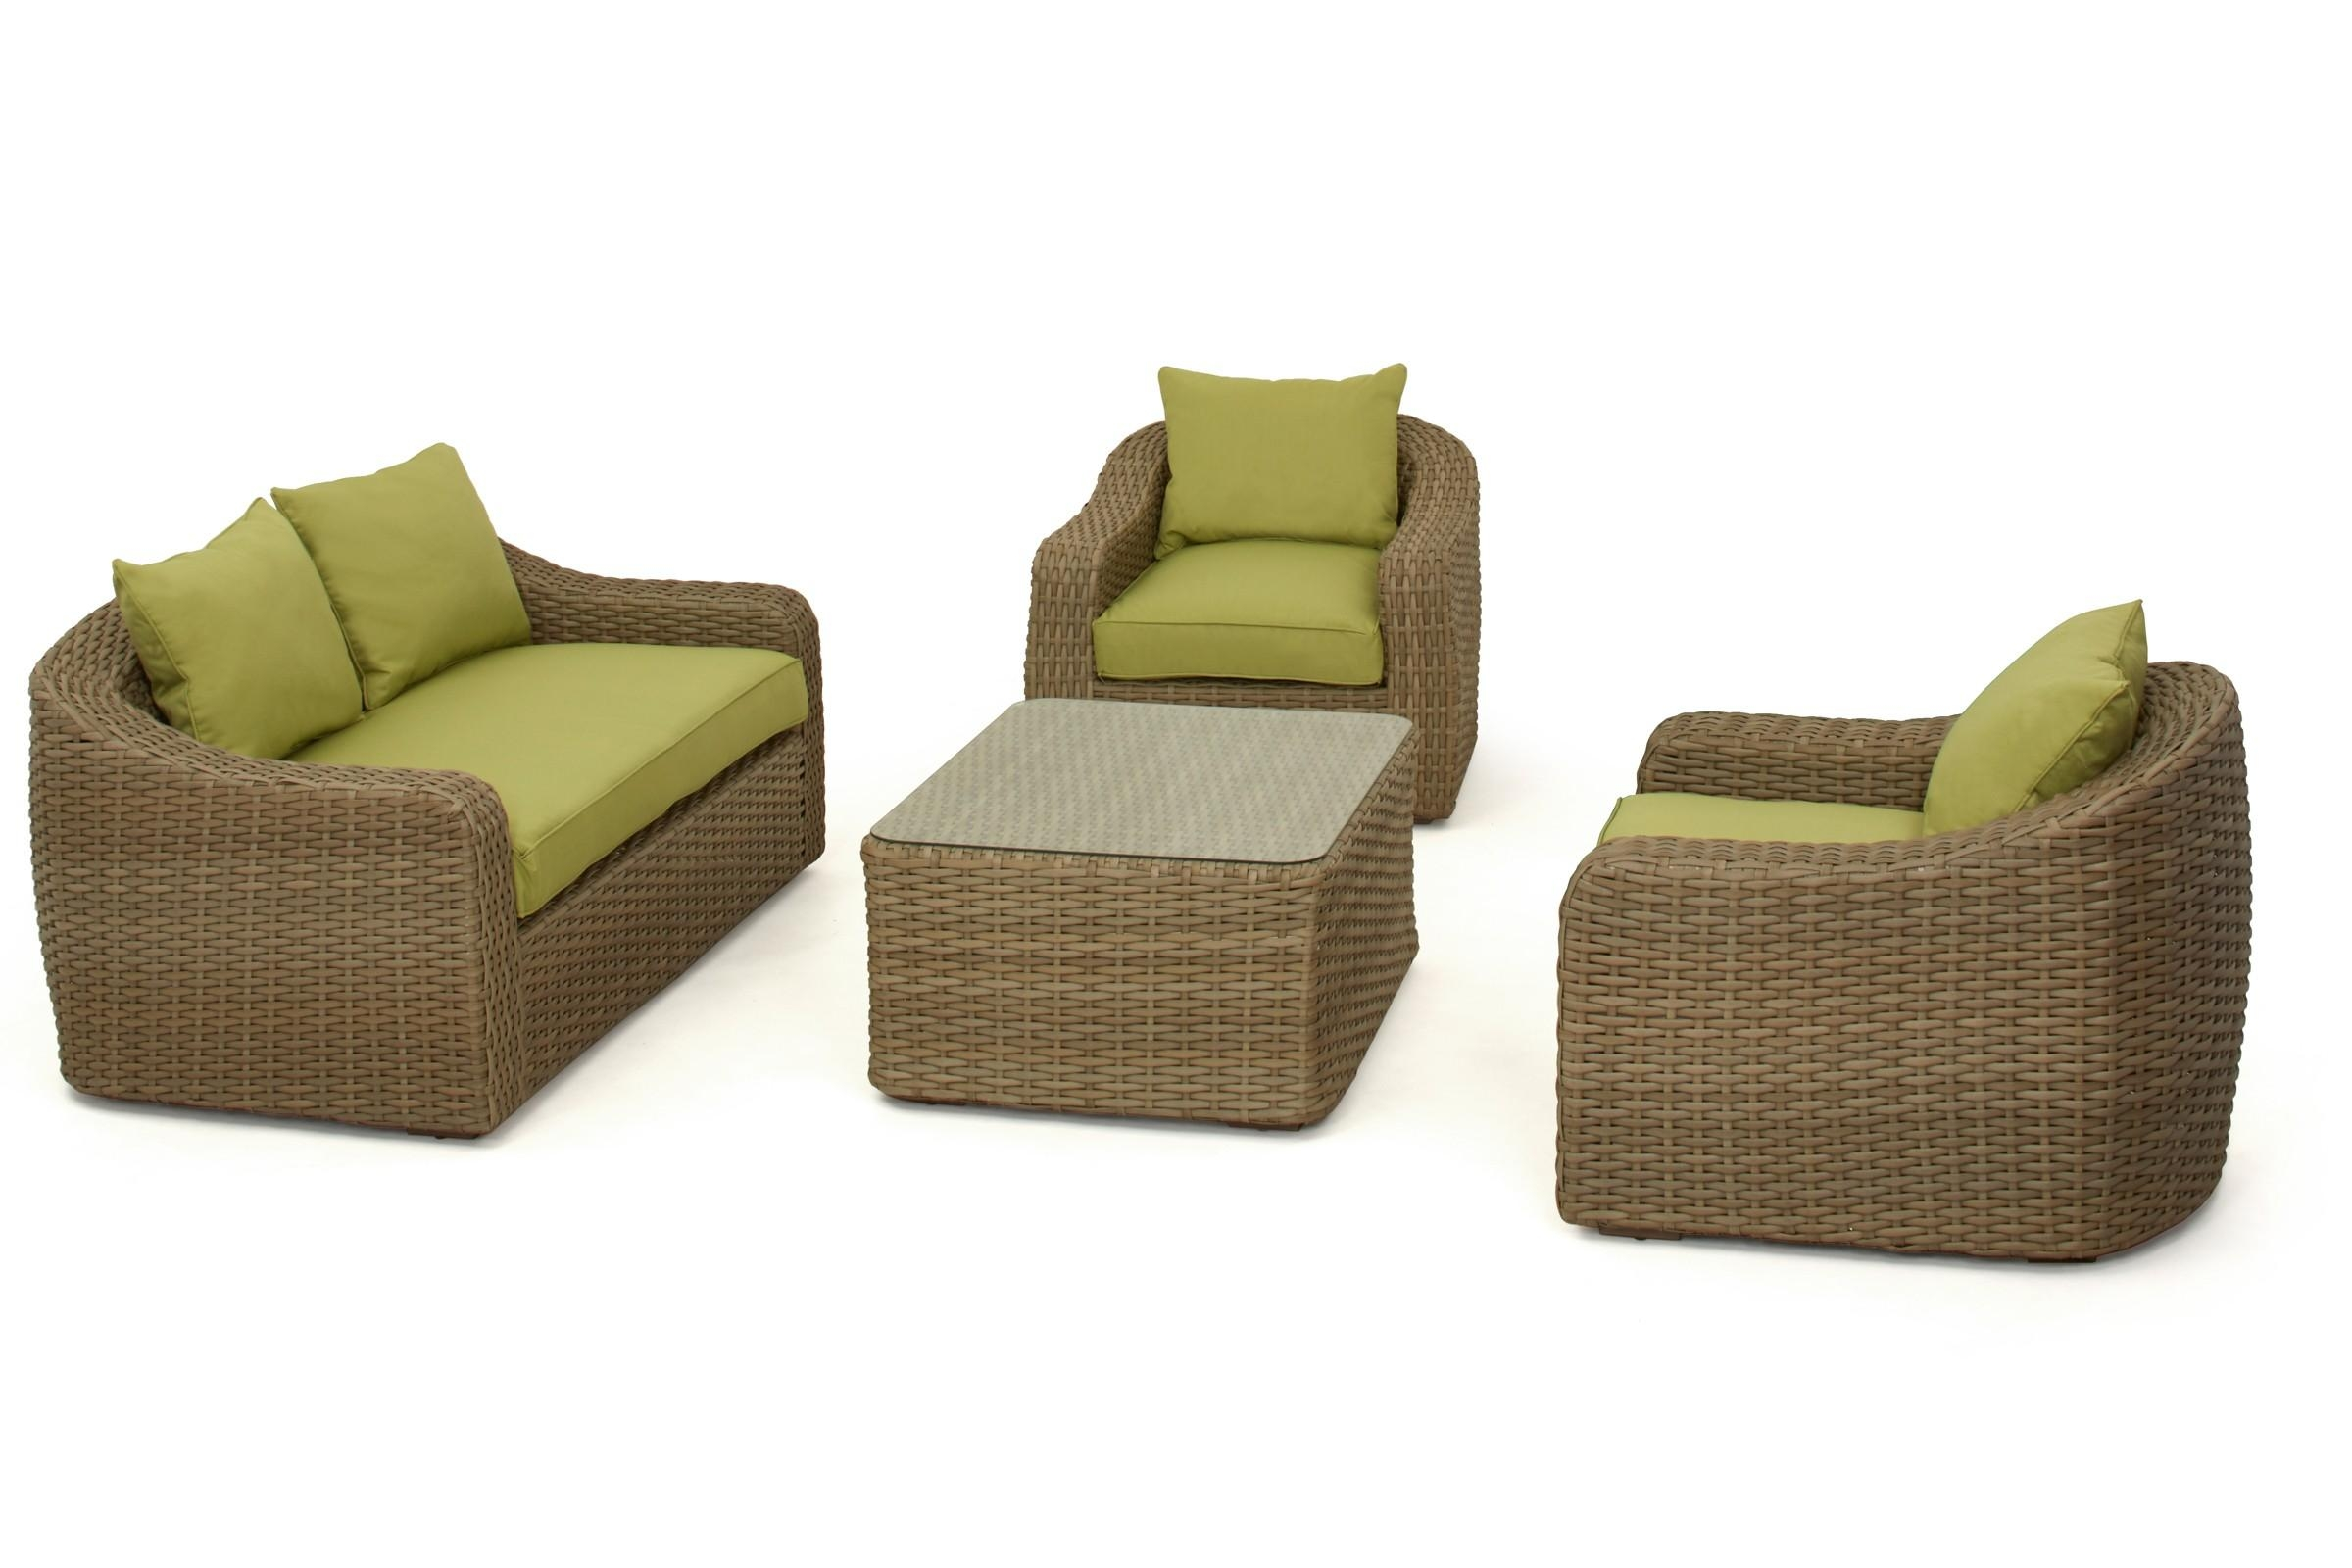 Maze Rattan Milan Rounded Sofa Set | Maze Living Within Rounded Sofa (Image 11 of 20)